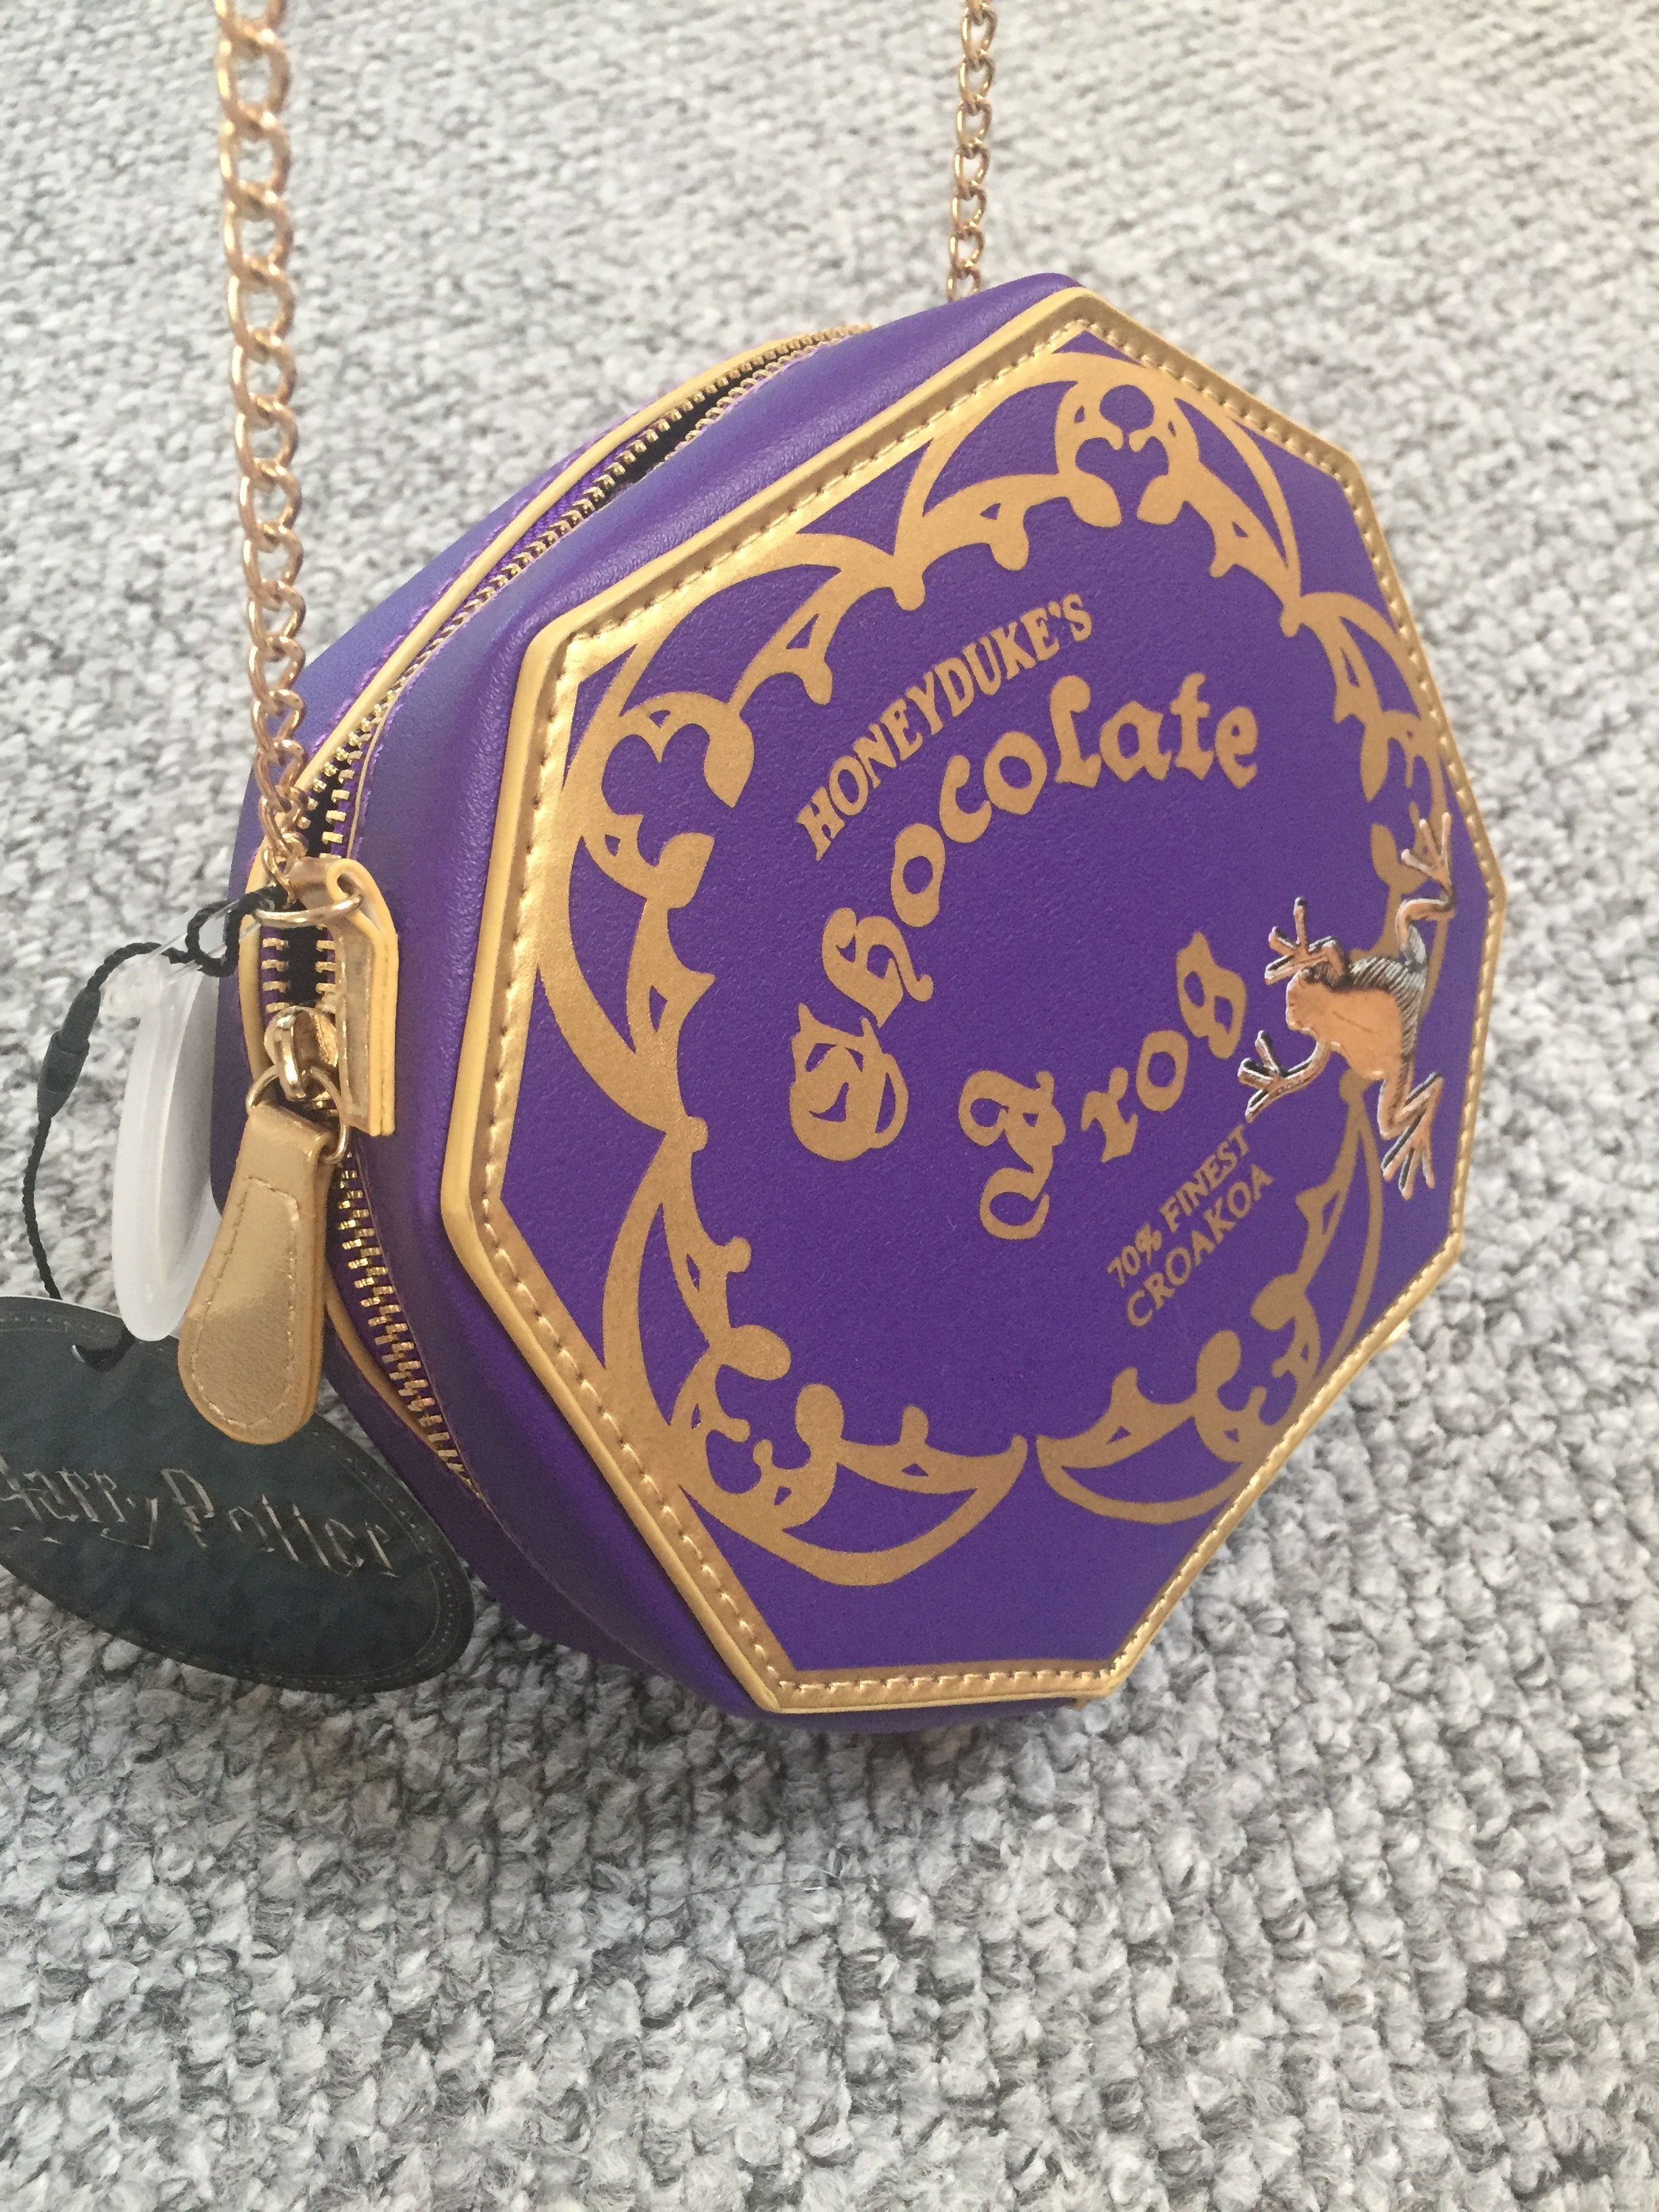 0370786e [Harry Potter Honeyduke's Chocolate Frog AcrossBody Bag with Chain] # harrypotter #harrypotterbag #eBay #onlineshopping #grandbazaaristanbul ...